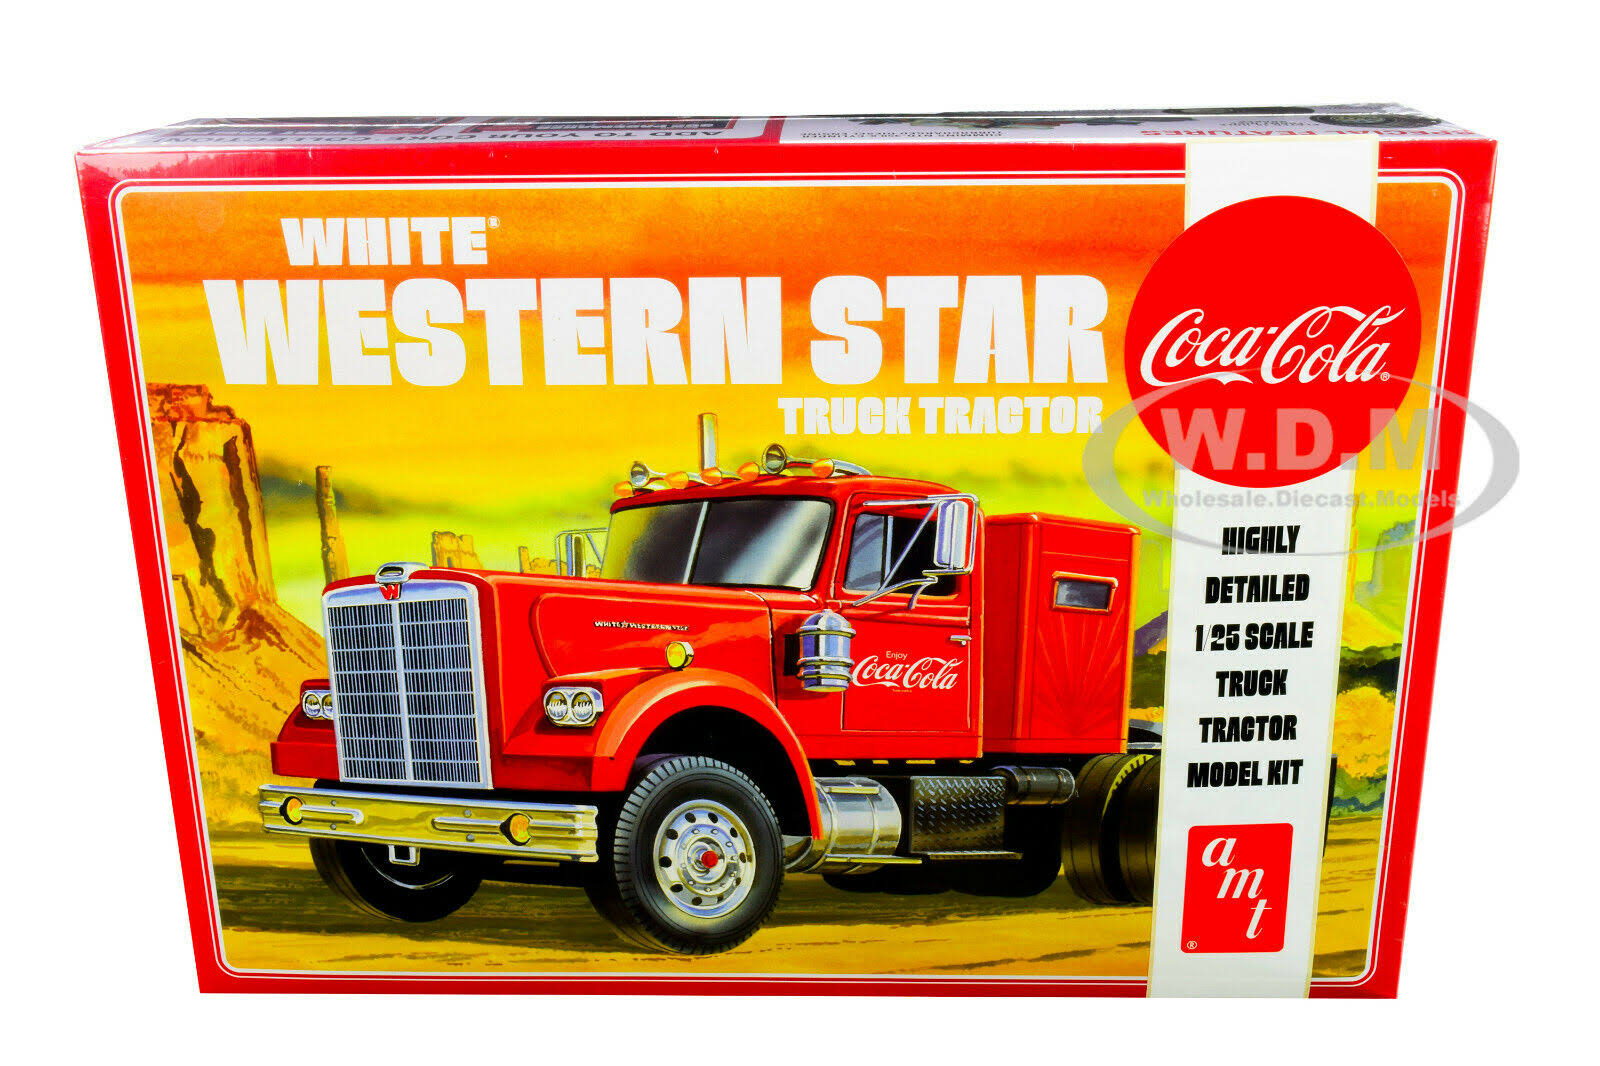 Amt Coca Cola White Western Star Truck Tractor Model Kit - 1/25 Scale